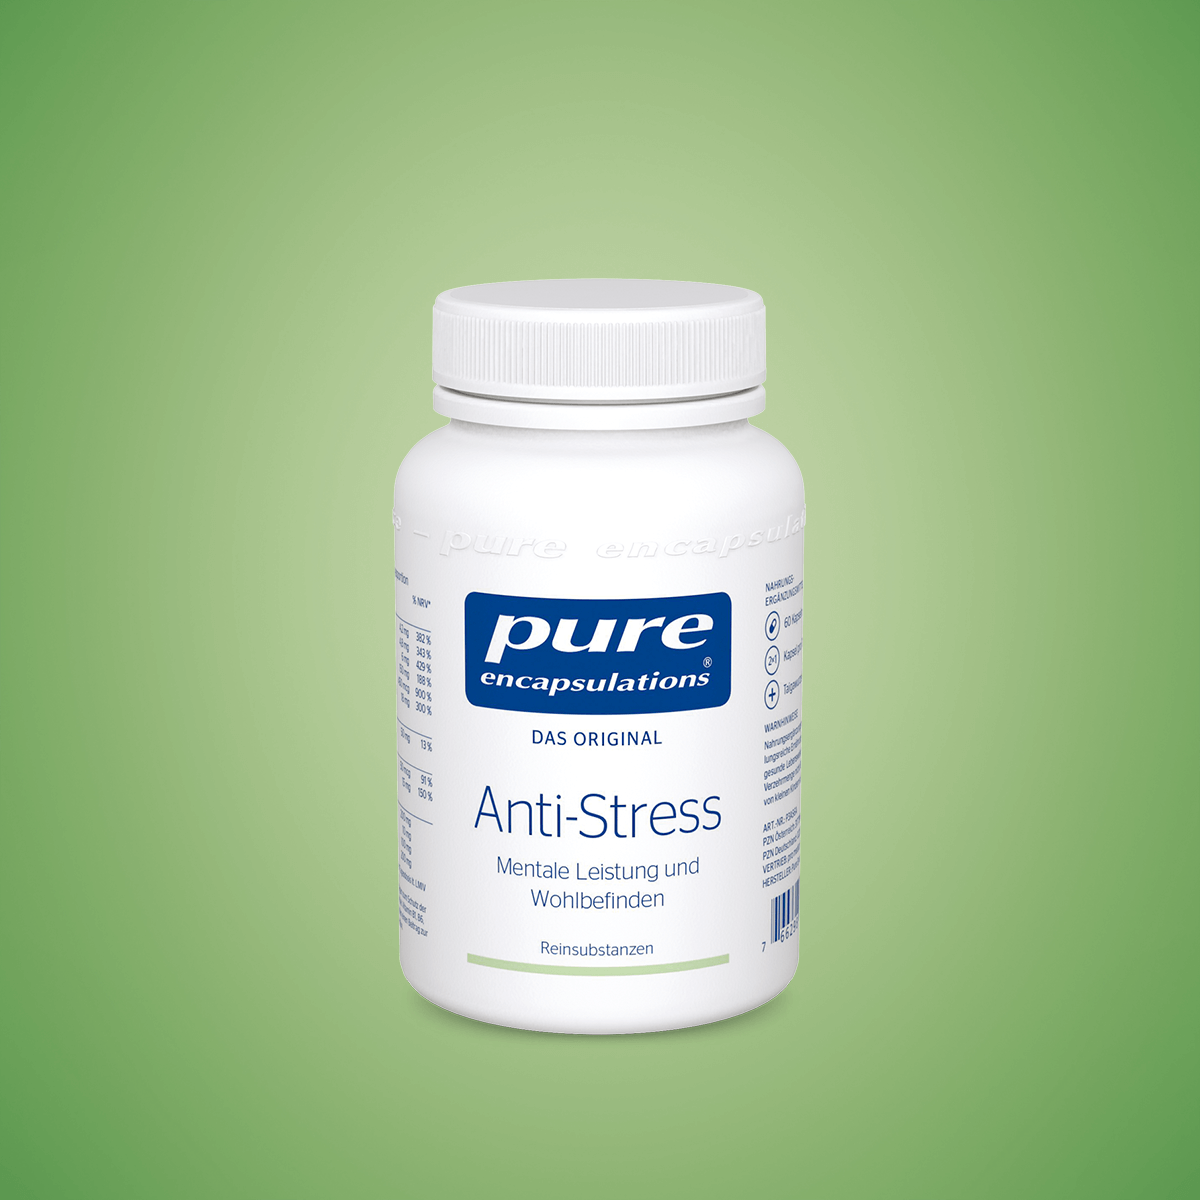 Anti Stress Produkt von Pure Encapsulations